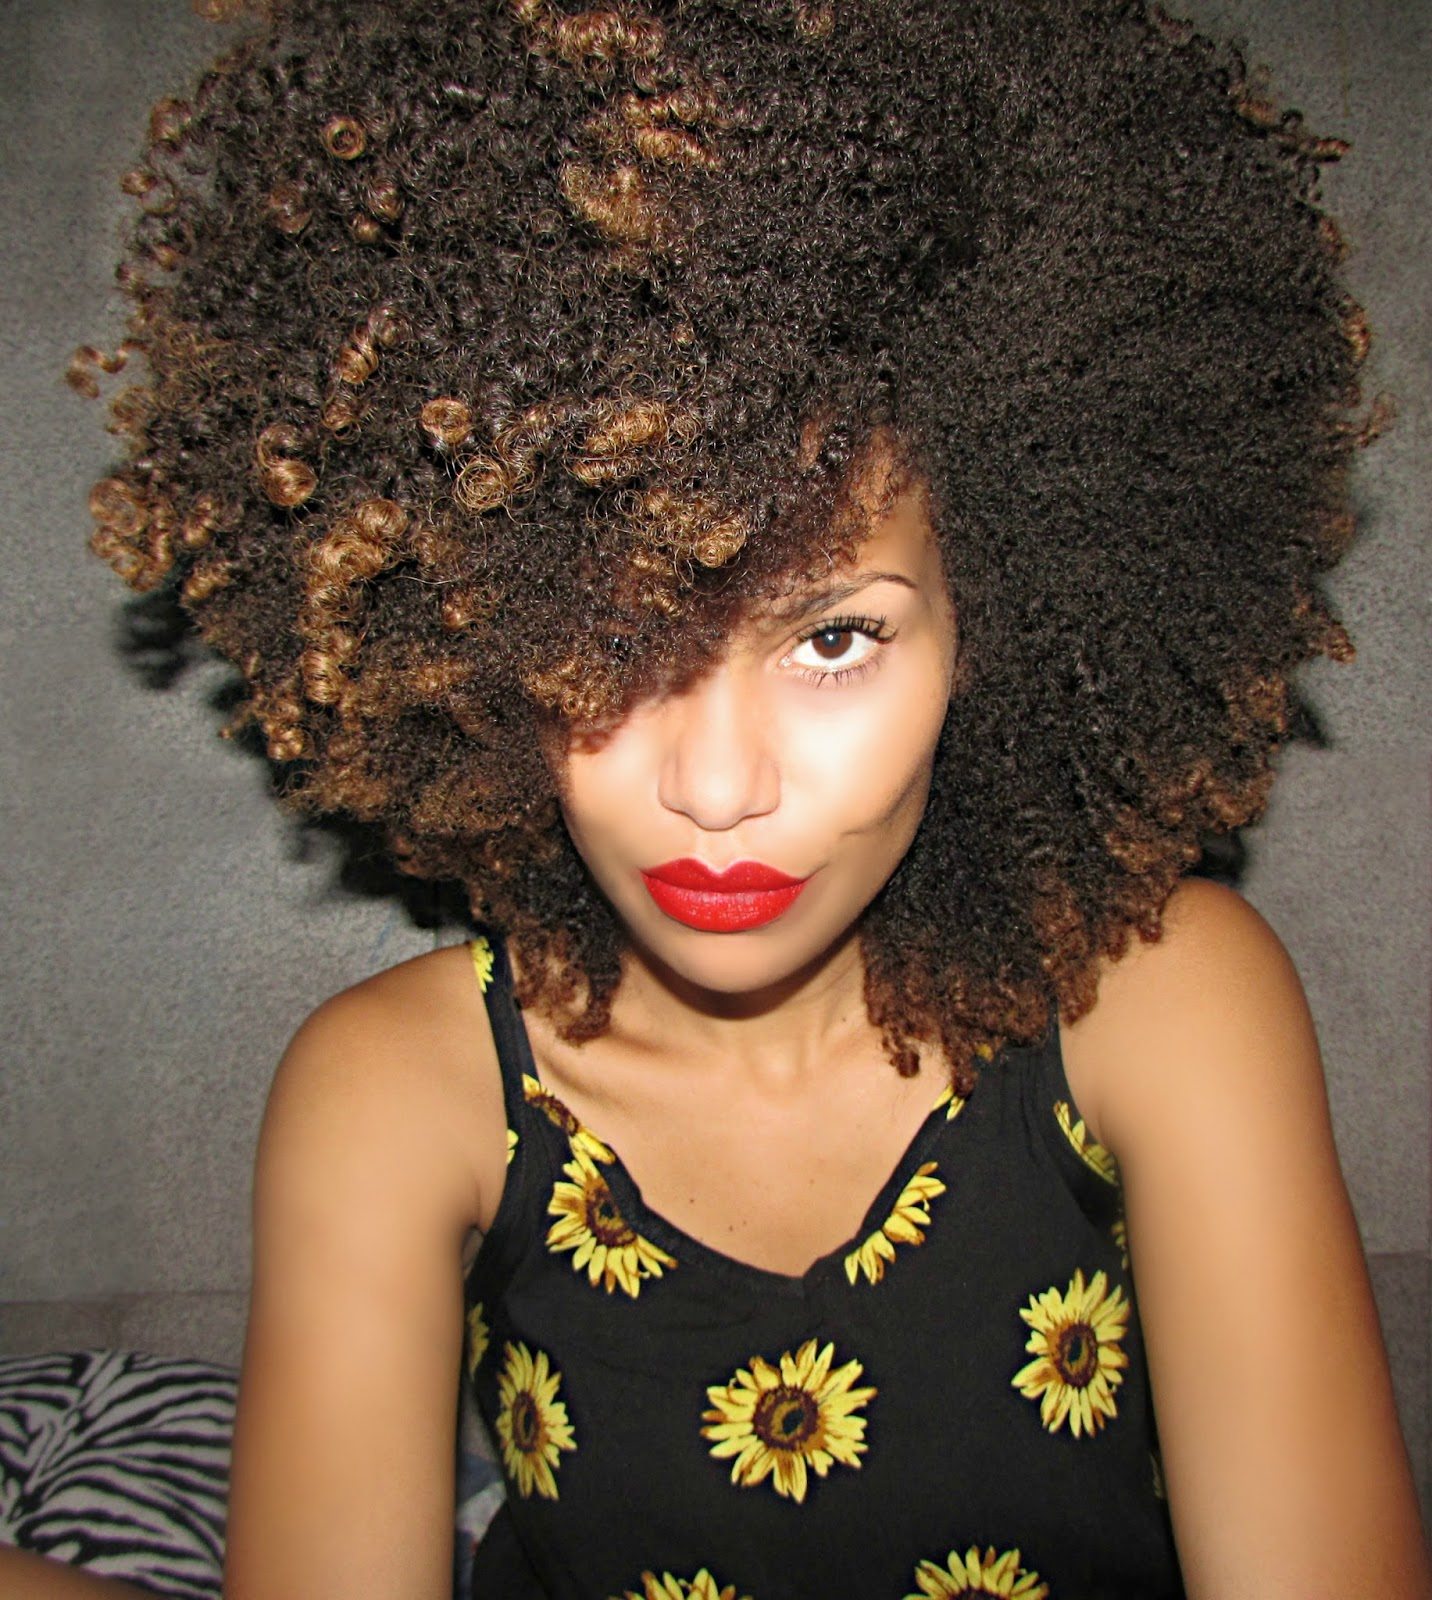 Loana From Brazil I Was Looking For My Own Identity So I Decided To Start With The Hair Curlynikki Natural Hair Care